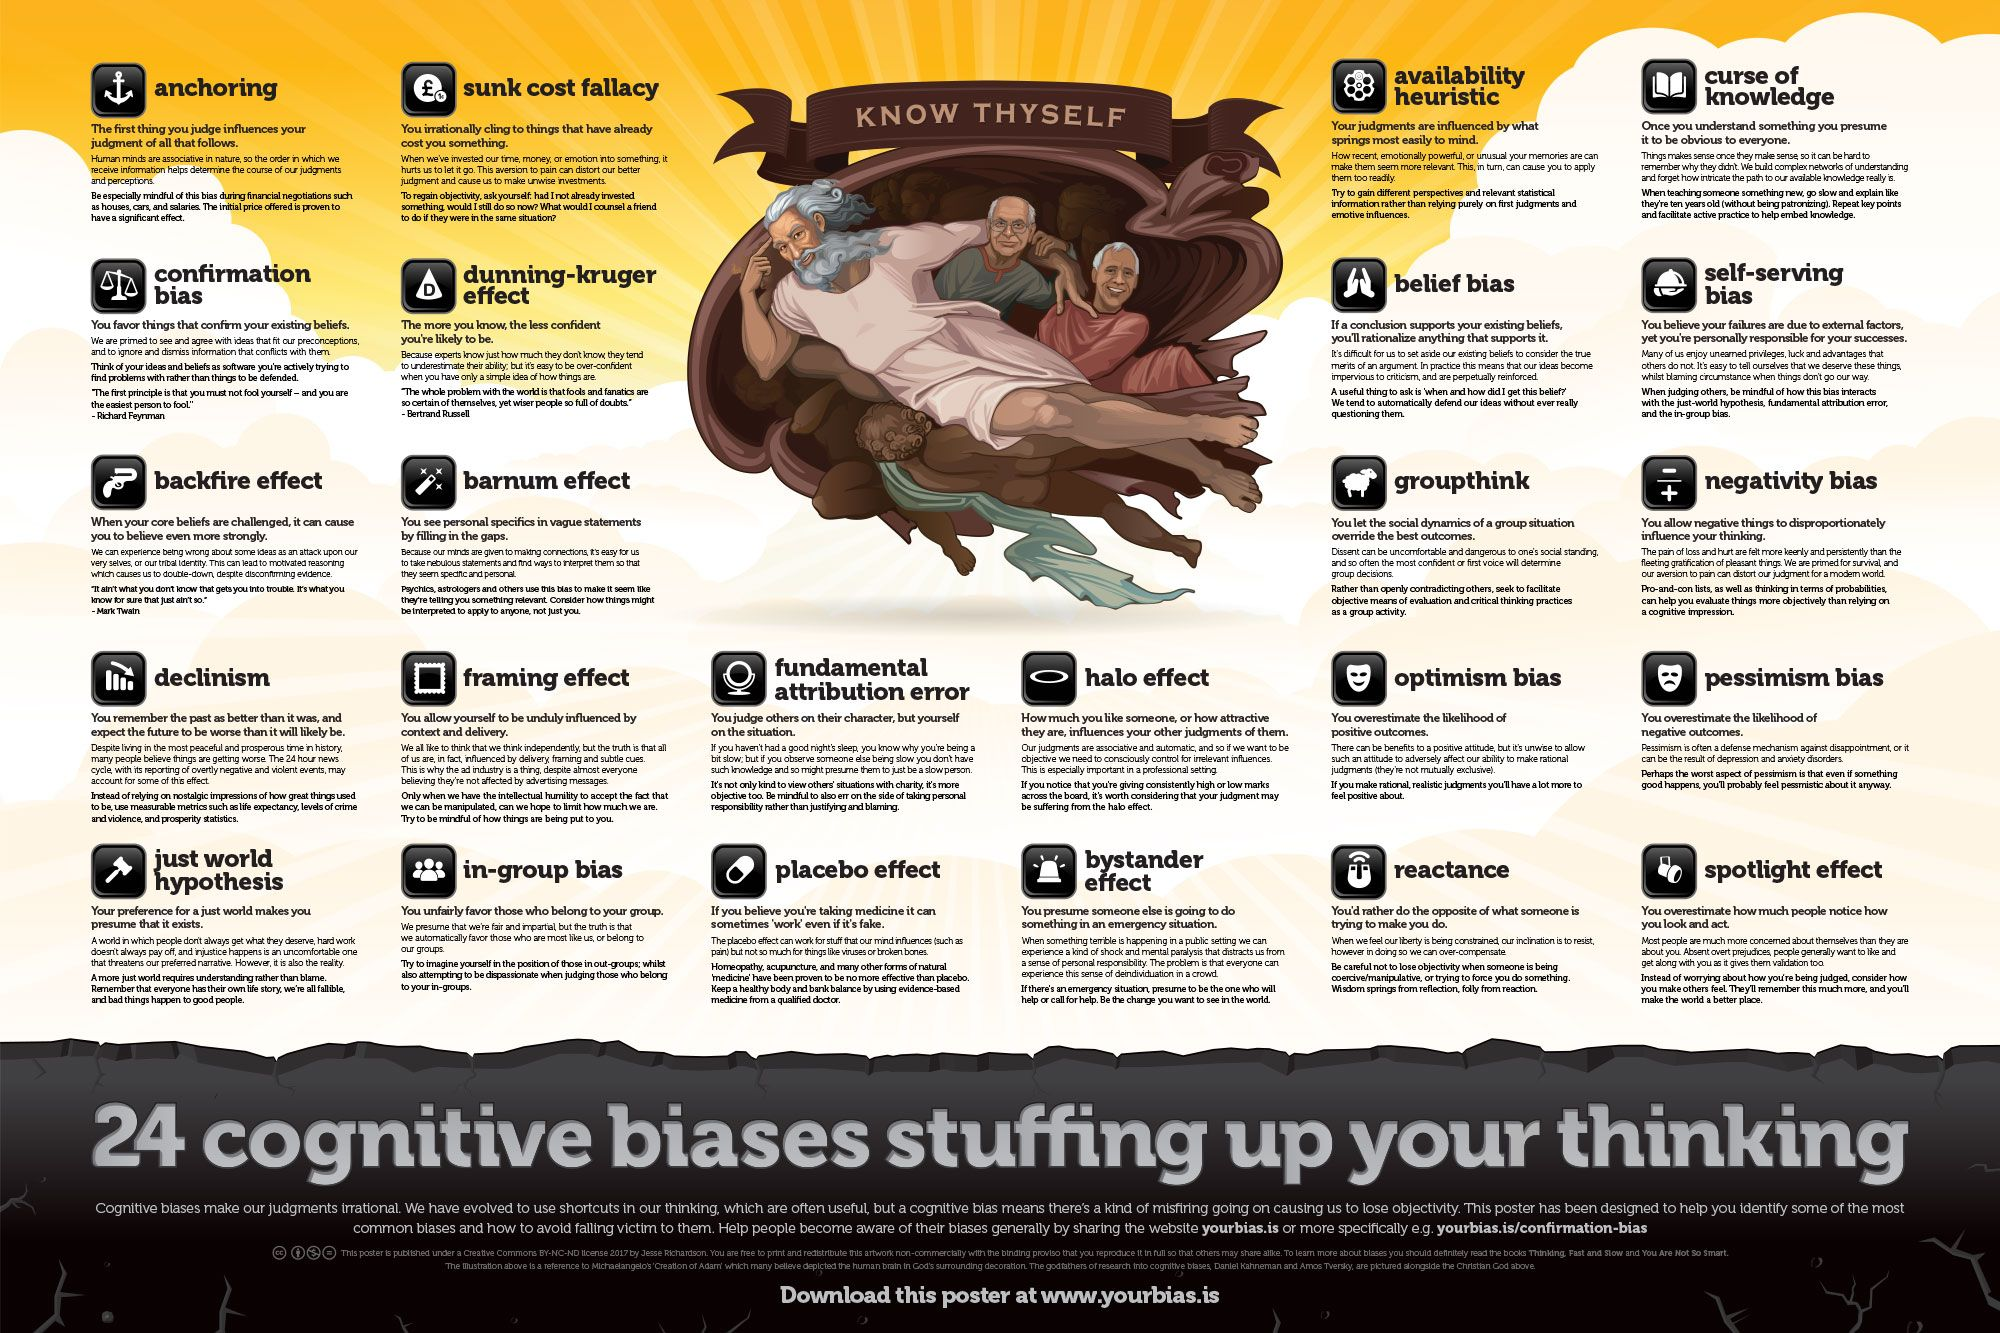 Poster 24 Cognitive Biases Stuffing Up Your Thinking